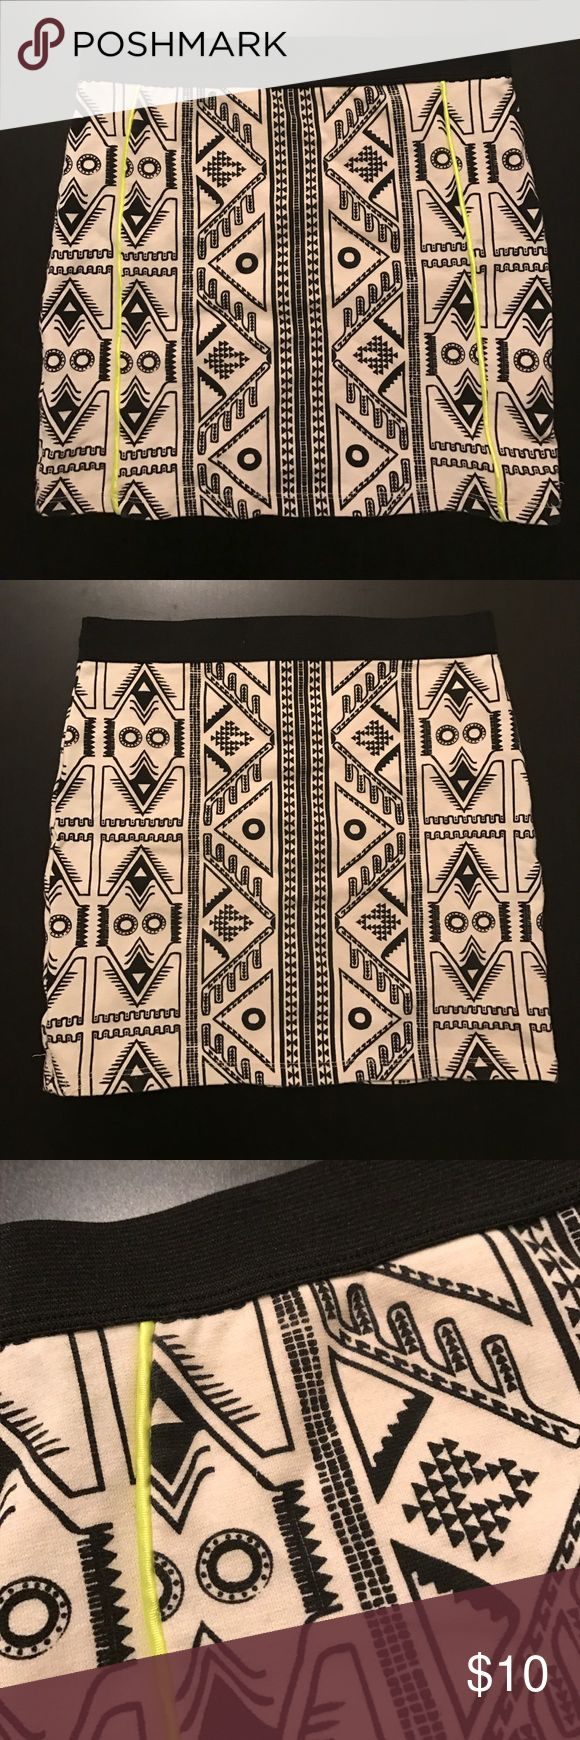 Tribal Print Bandage Skirt Black and cream tribal print bandage skirt with neon yellow lines on the front. Thick material with elastic band. From Zara in Spain. Worn once Zara Skirts Mini